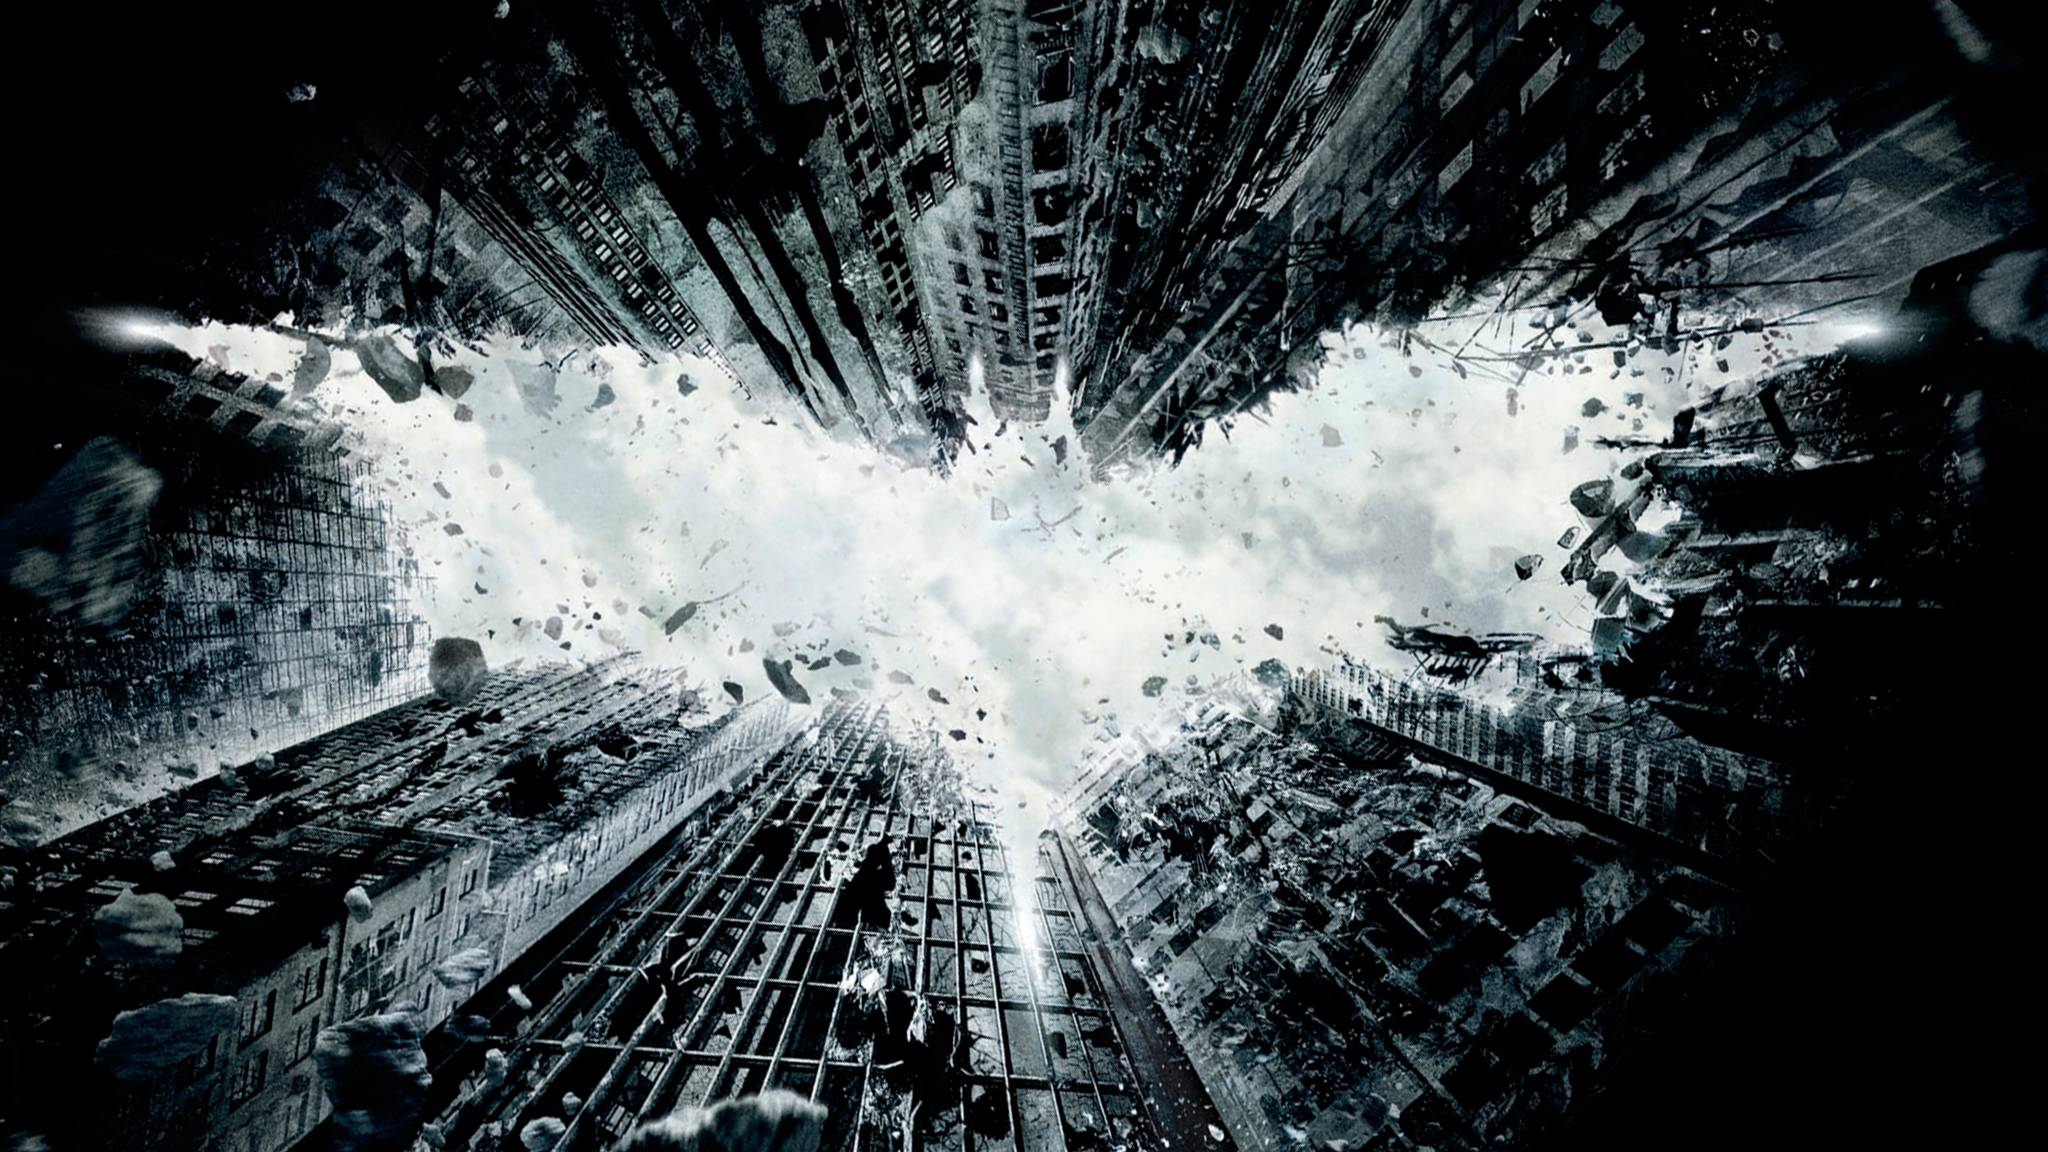 Batman the dark knight rises wallpapers wallpaper cave 160 the dark knight rises wallpapers the dark knight rises voltagebd Image collections